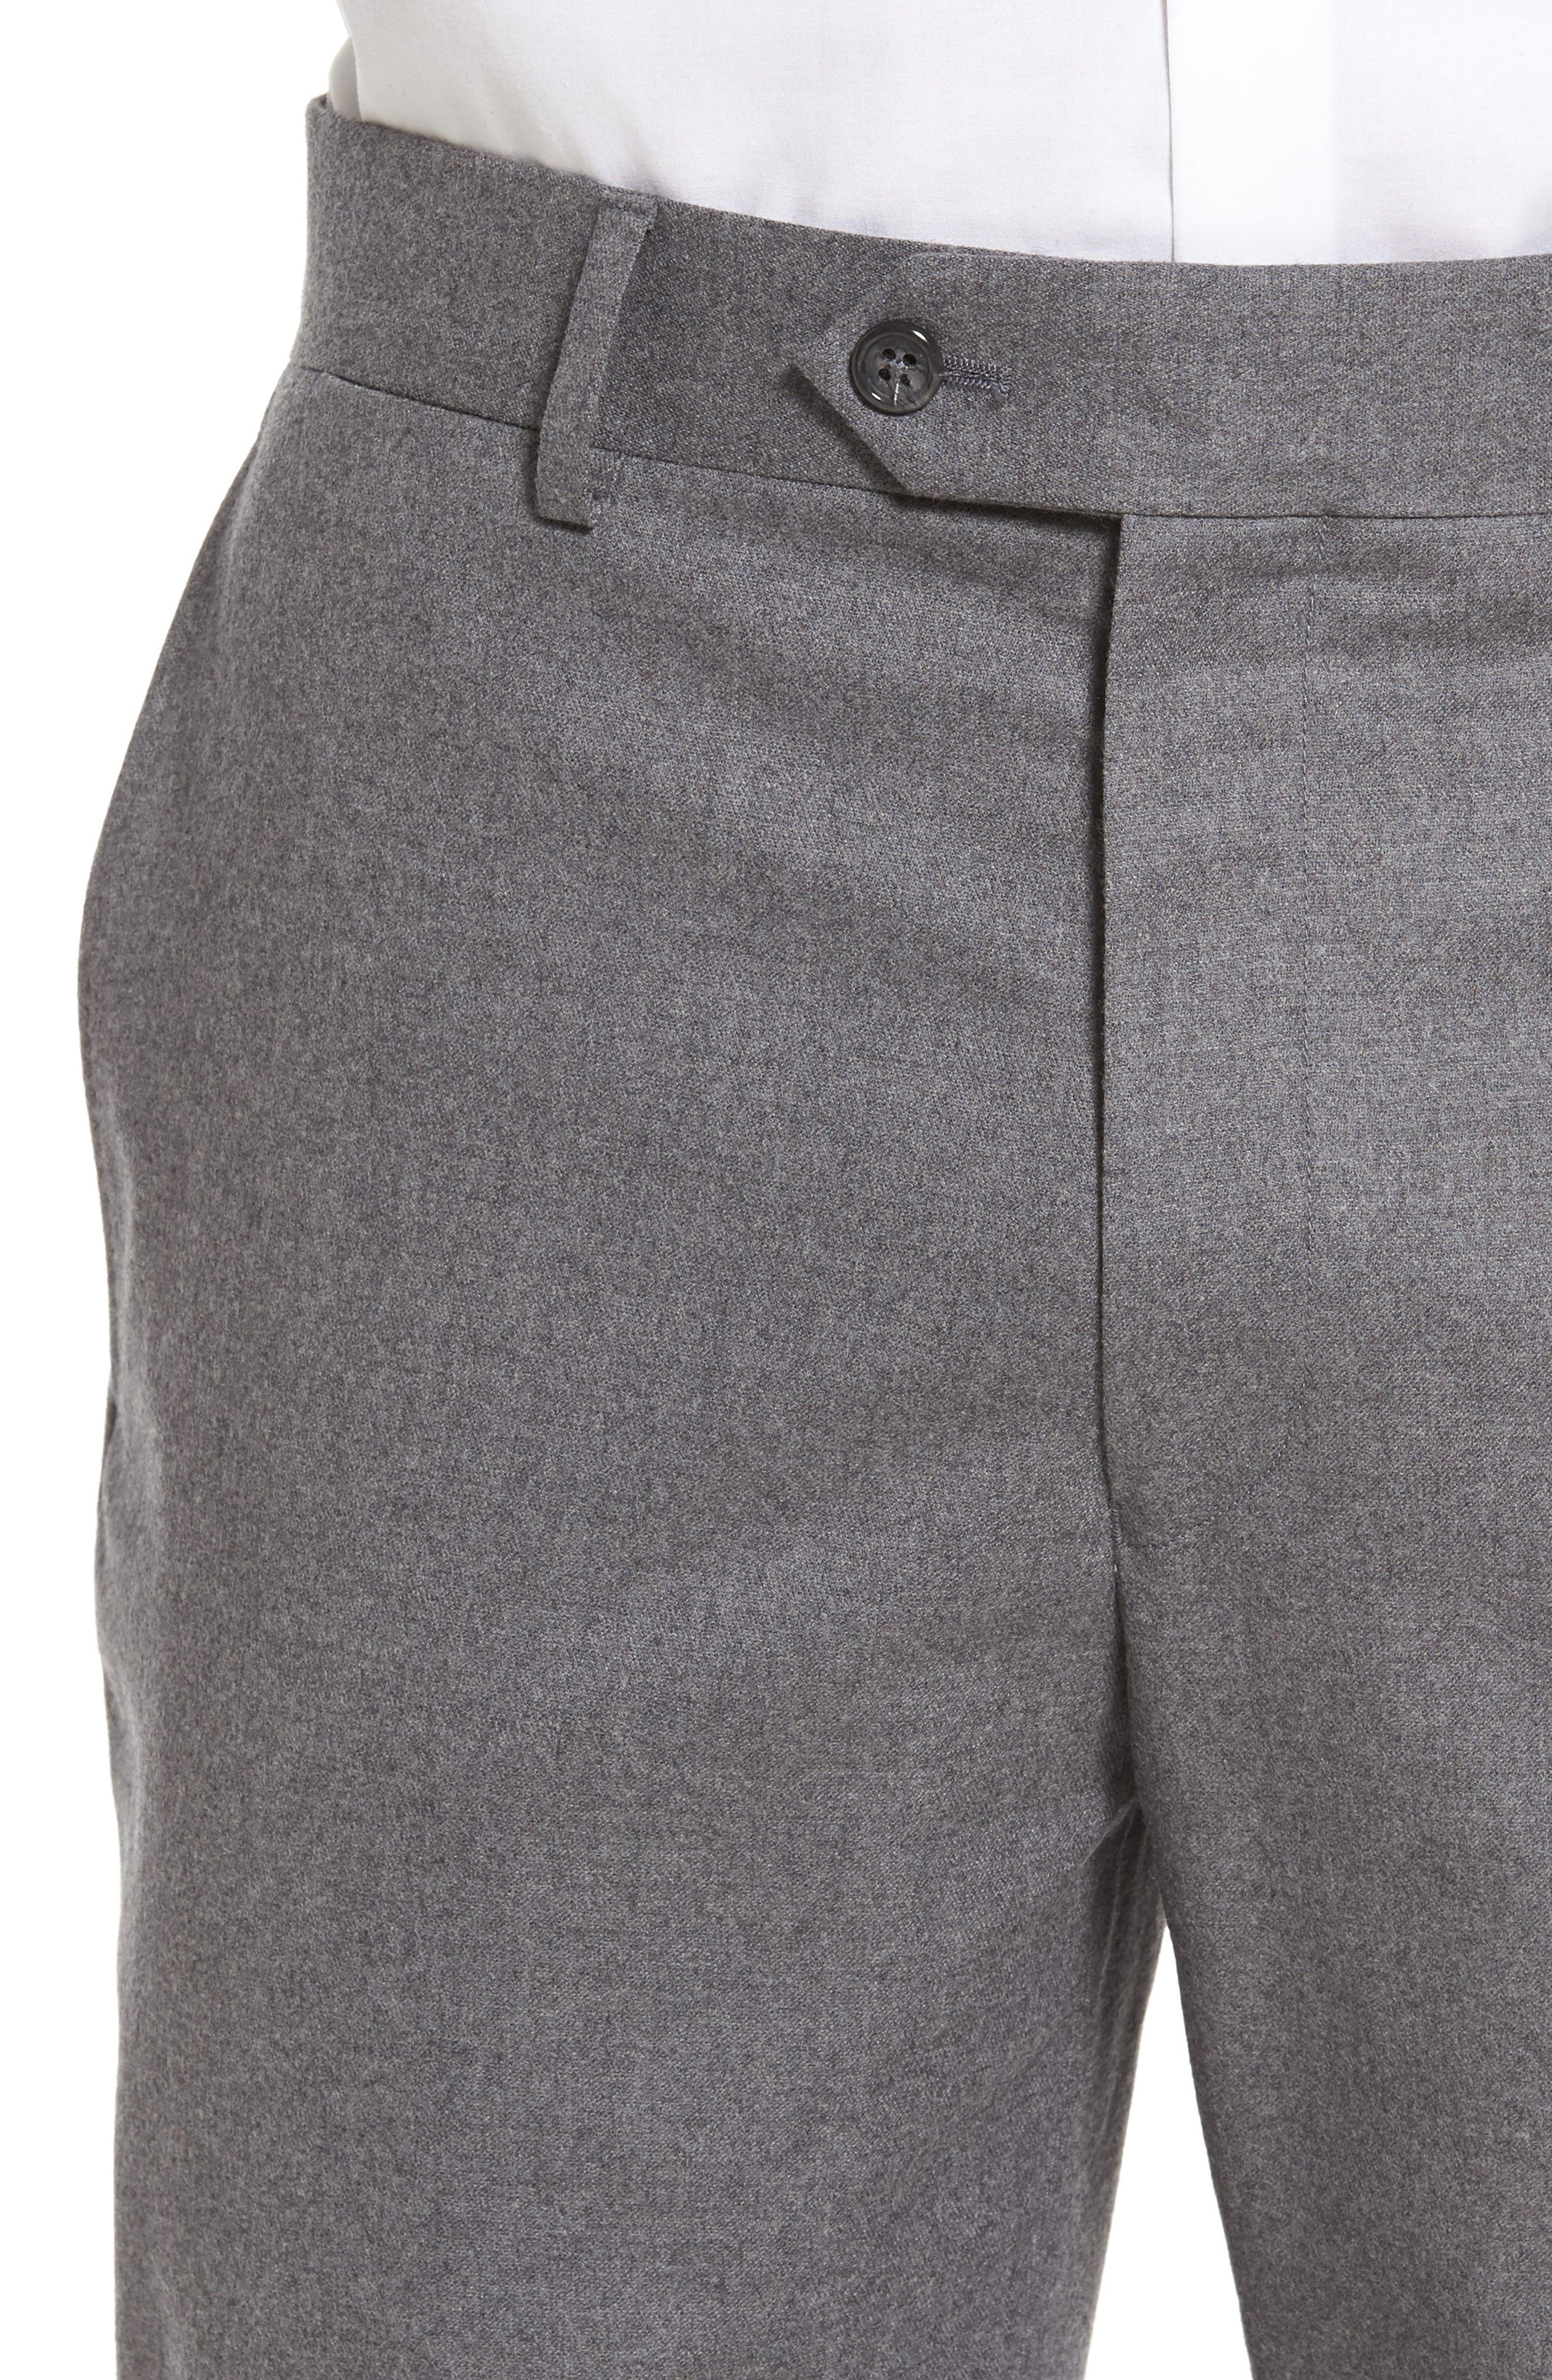 Sutton Flat Front Stretch Wool Trousers,                             Alternate thumbnail 4, color,                             Light Grey